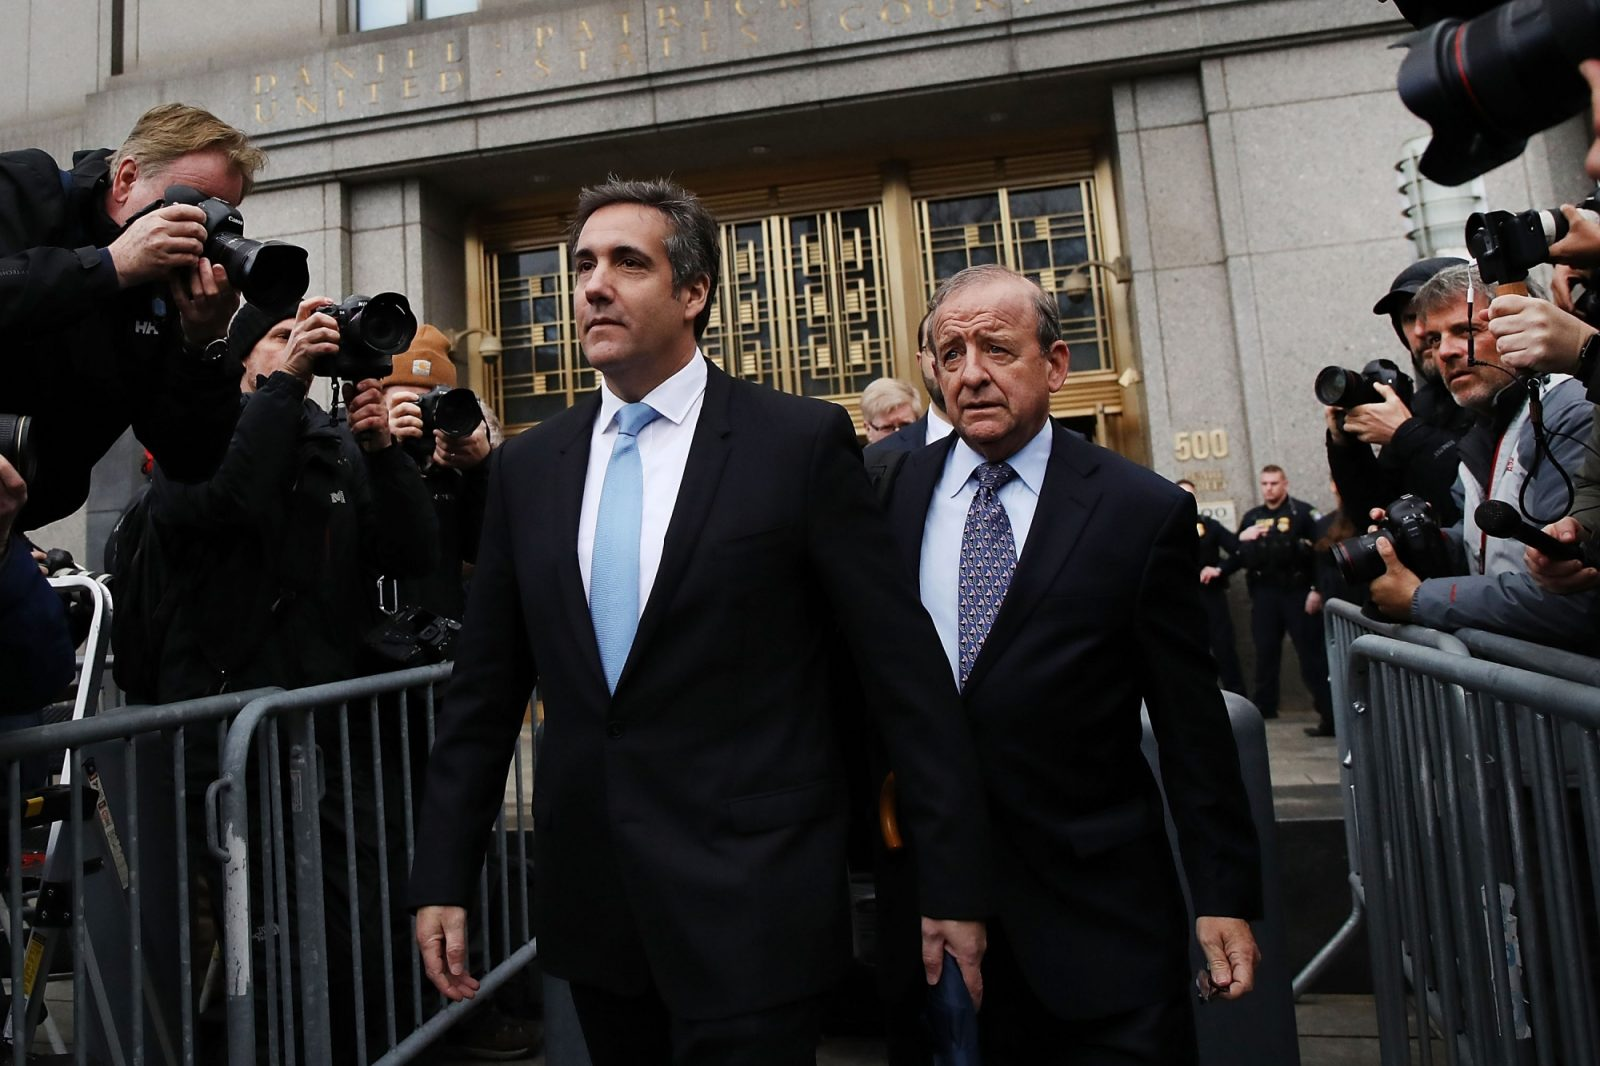 Michael Cohen and Trump, Inc.